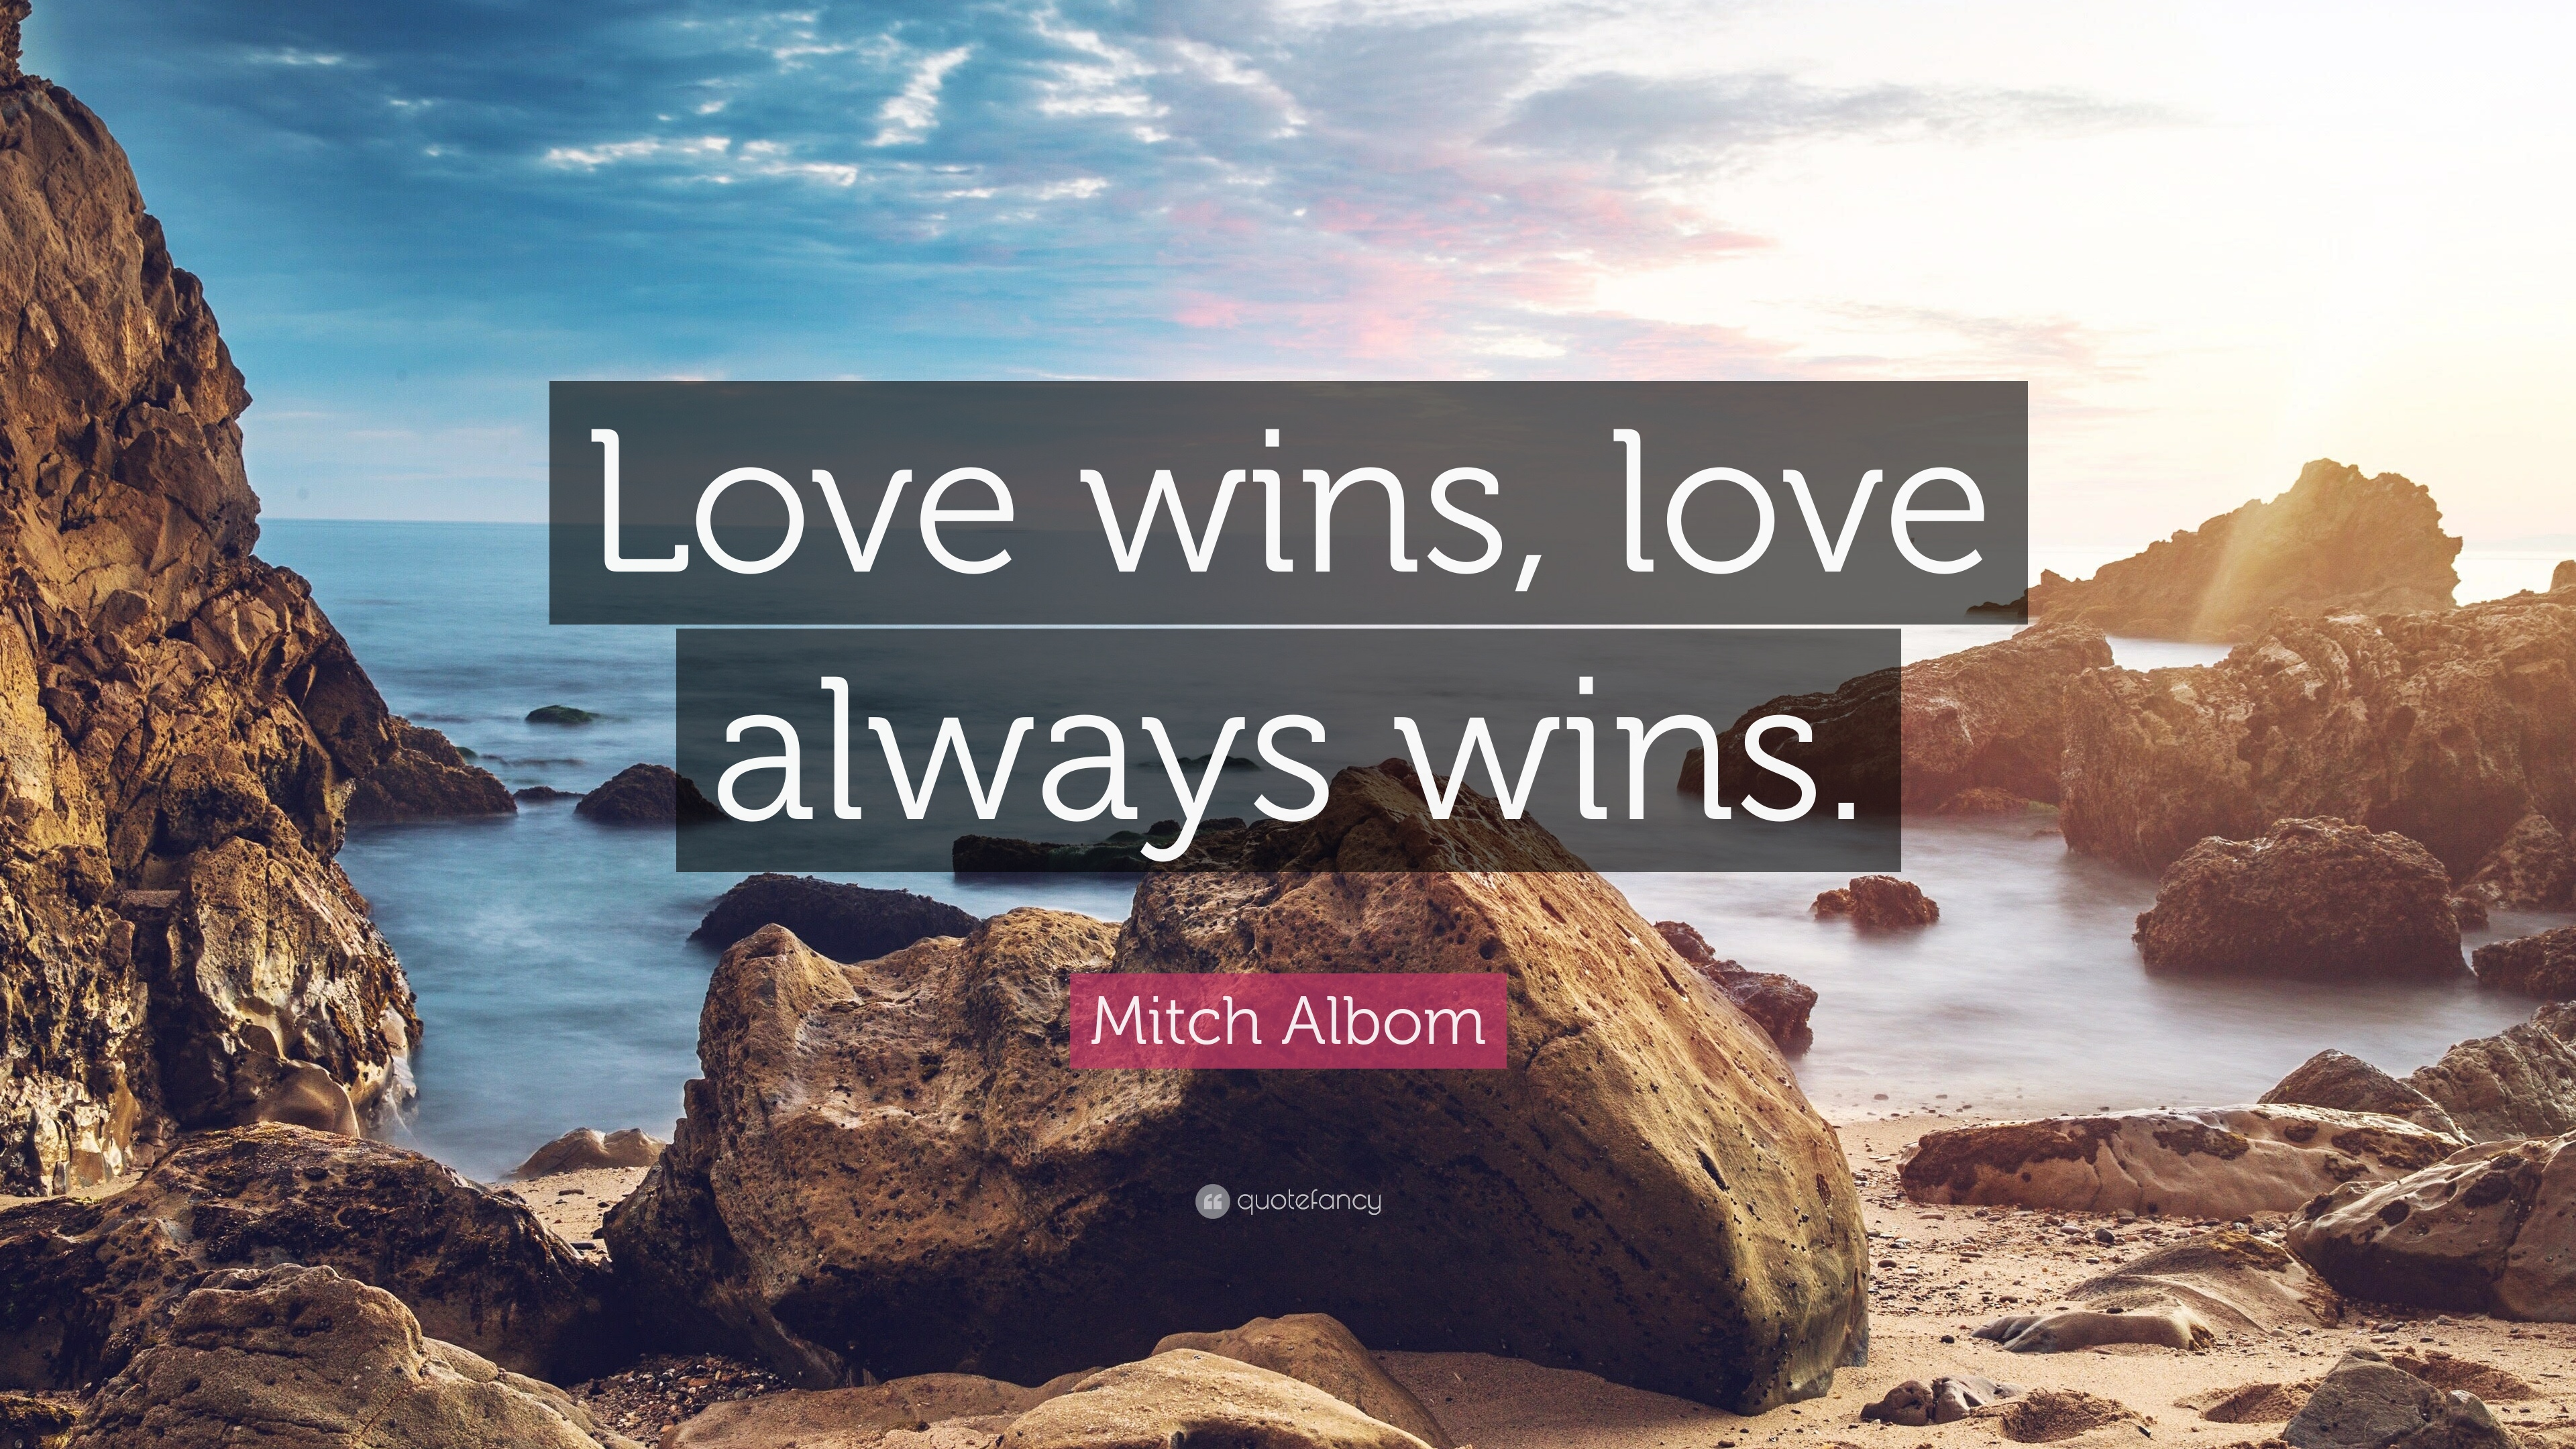 Mitch Albom Quote: ?Love wins, love always wins.? (10 wallpapers ...